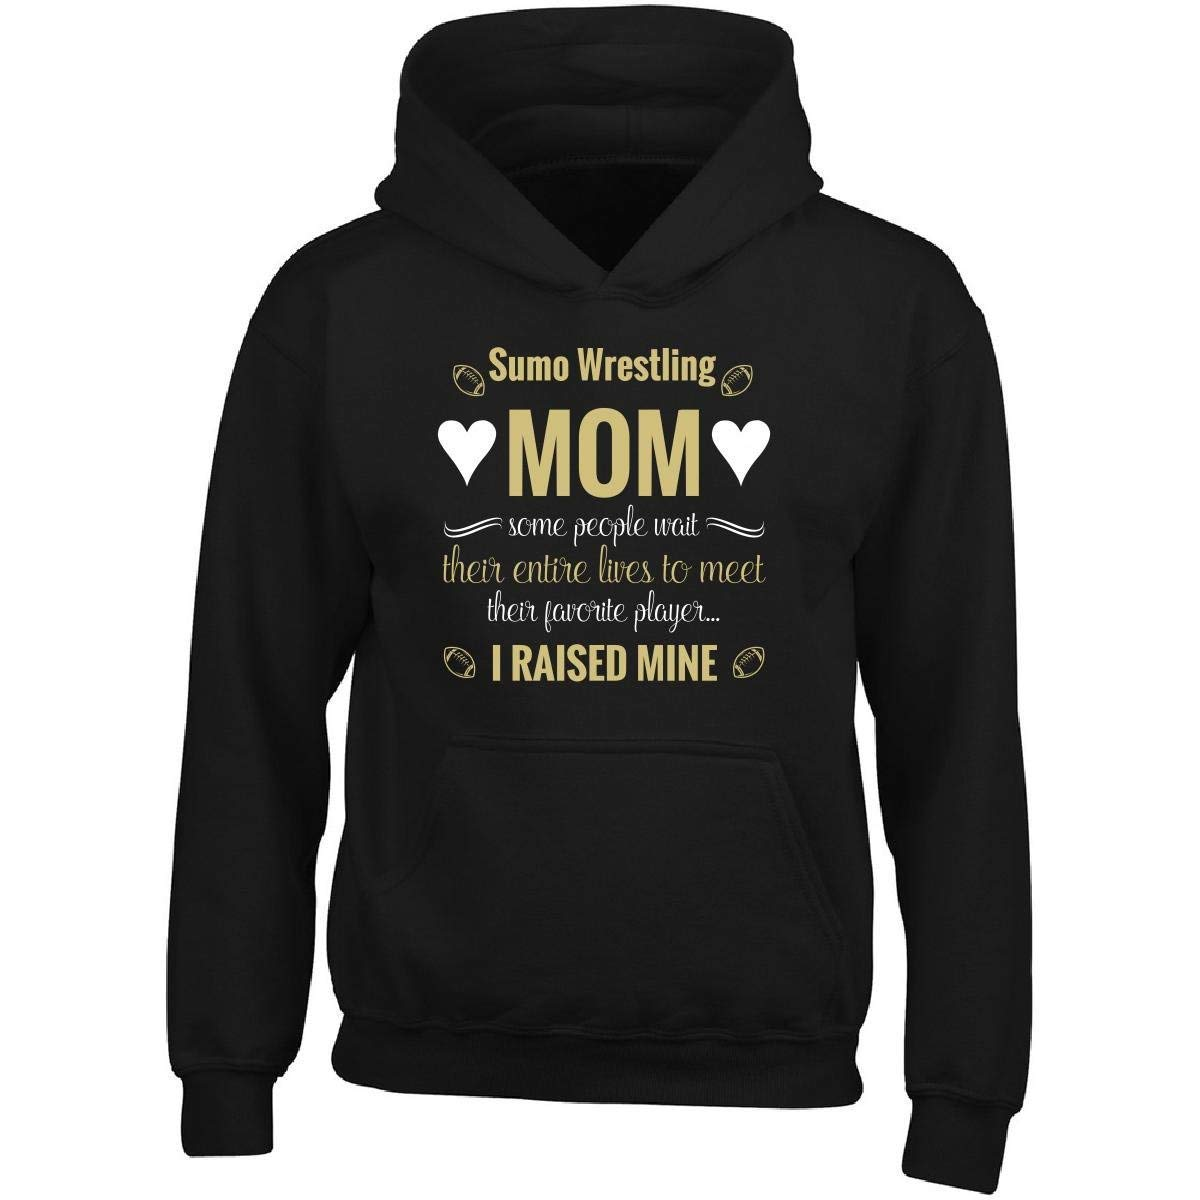 Mother's Day Awesome Gift for Sumo Wrestling Mom Cool - Men Hoodie by Bvtemp